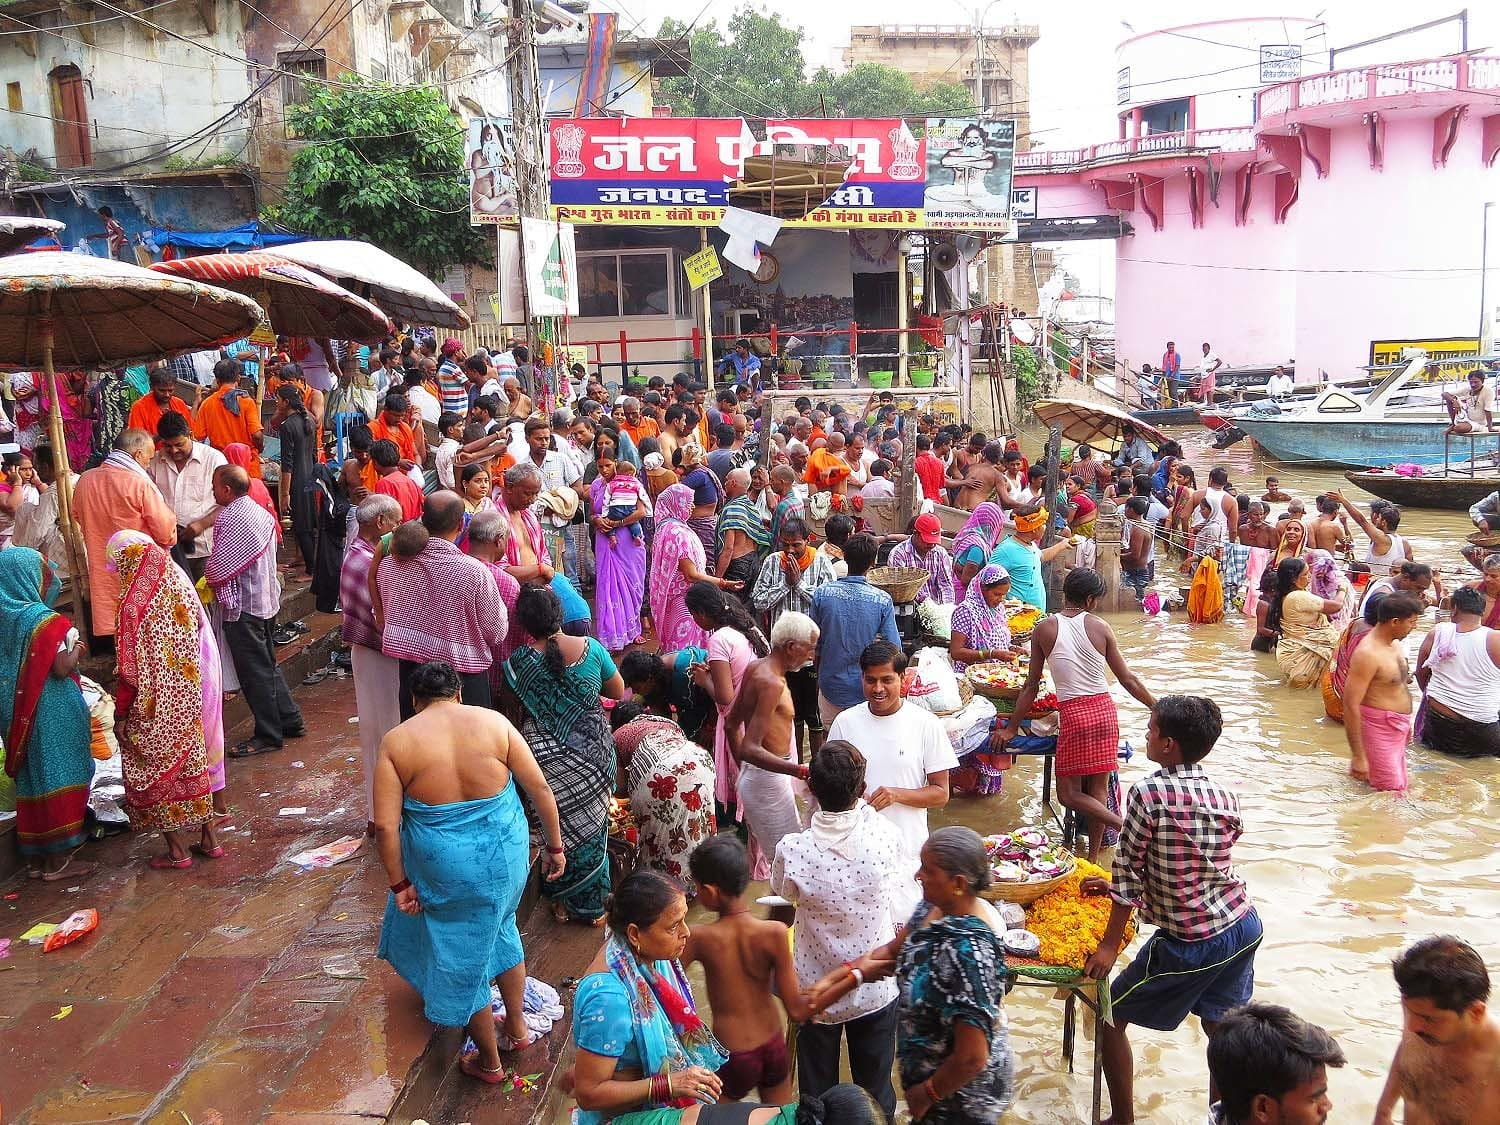 People bathe in the holy Ganges river in Varanasi.